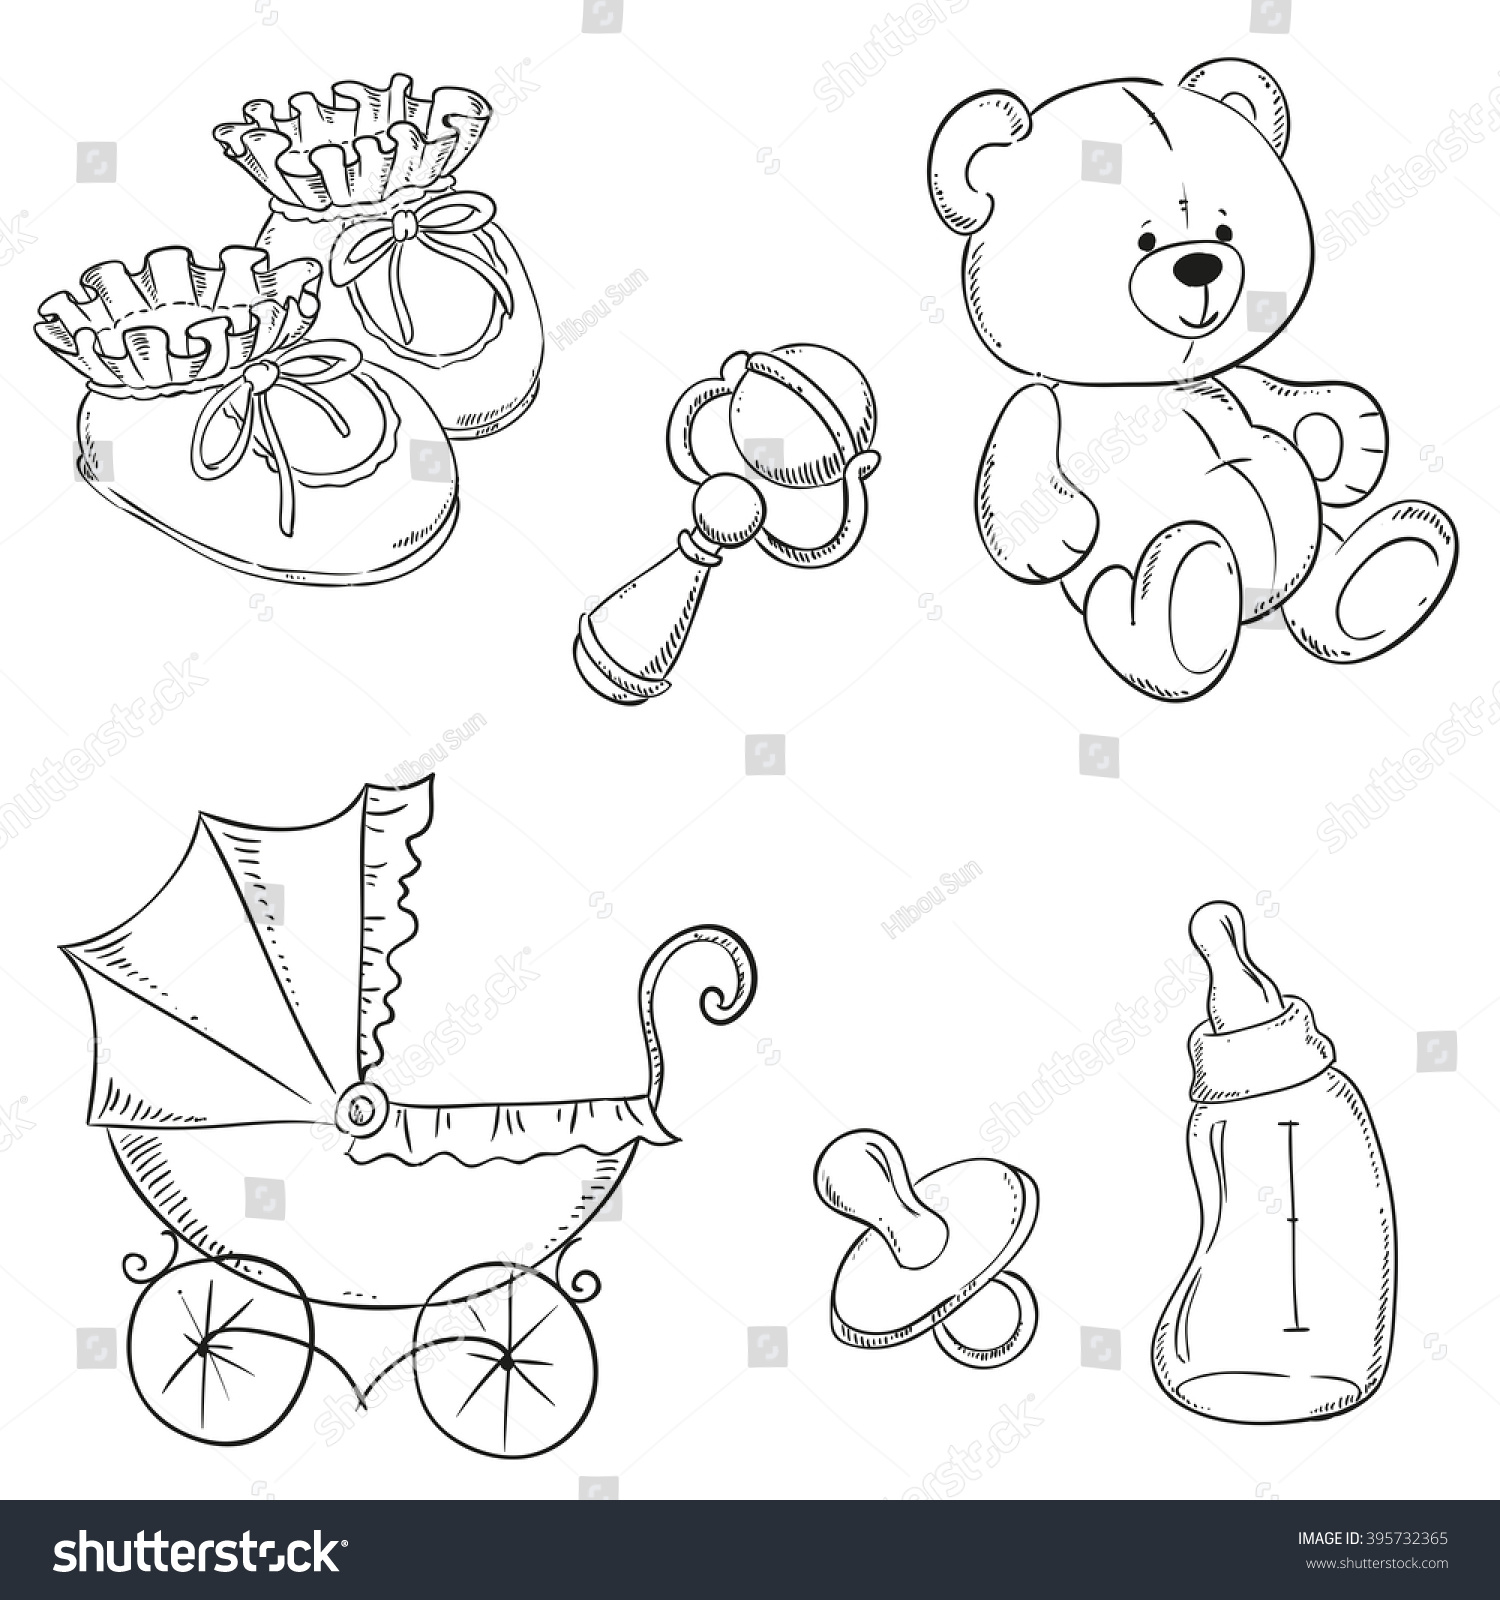 Coloring book page of a pacifier - Baby Stroller Pacifier Teddy Bear Bottle Booties